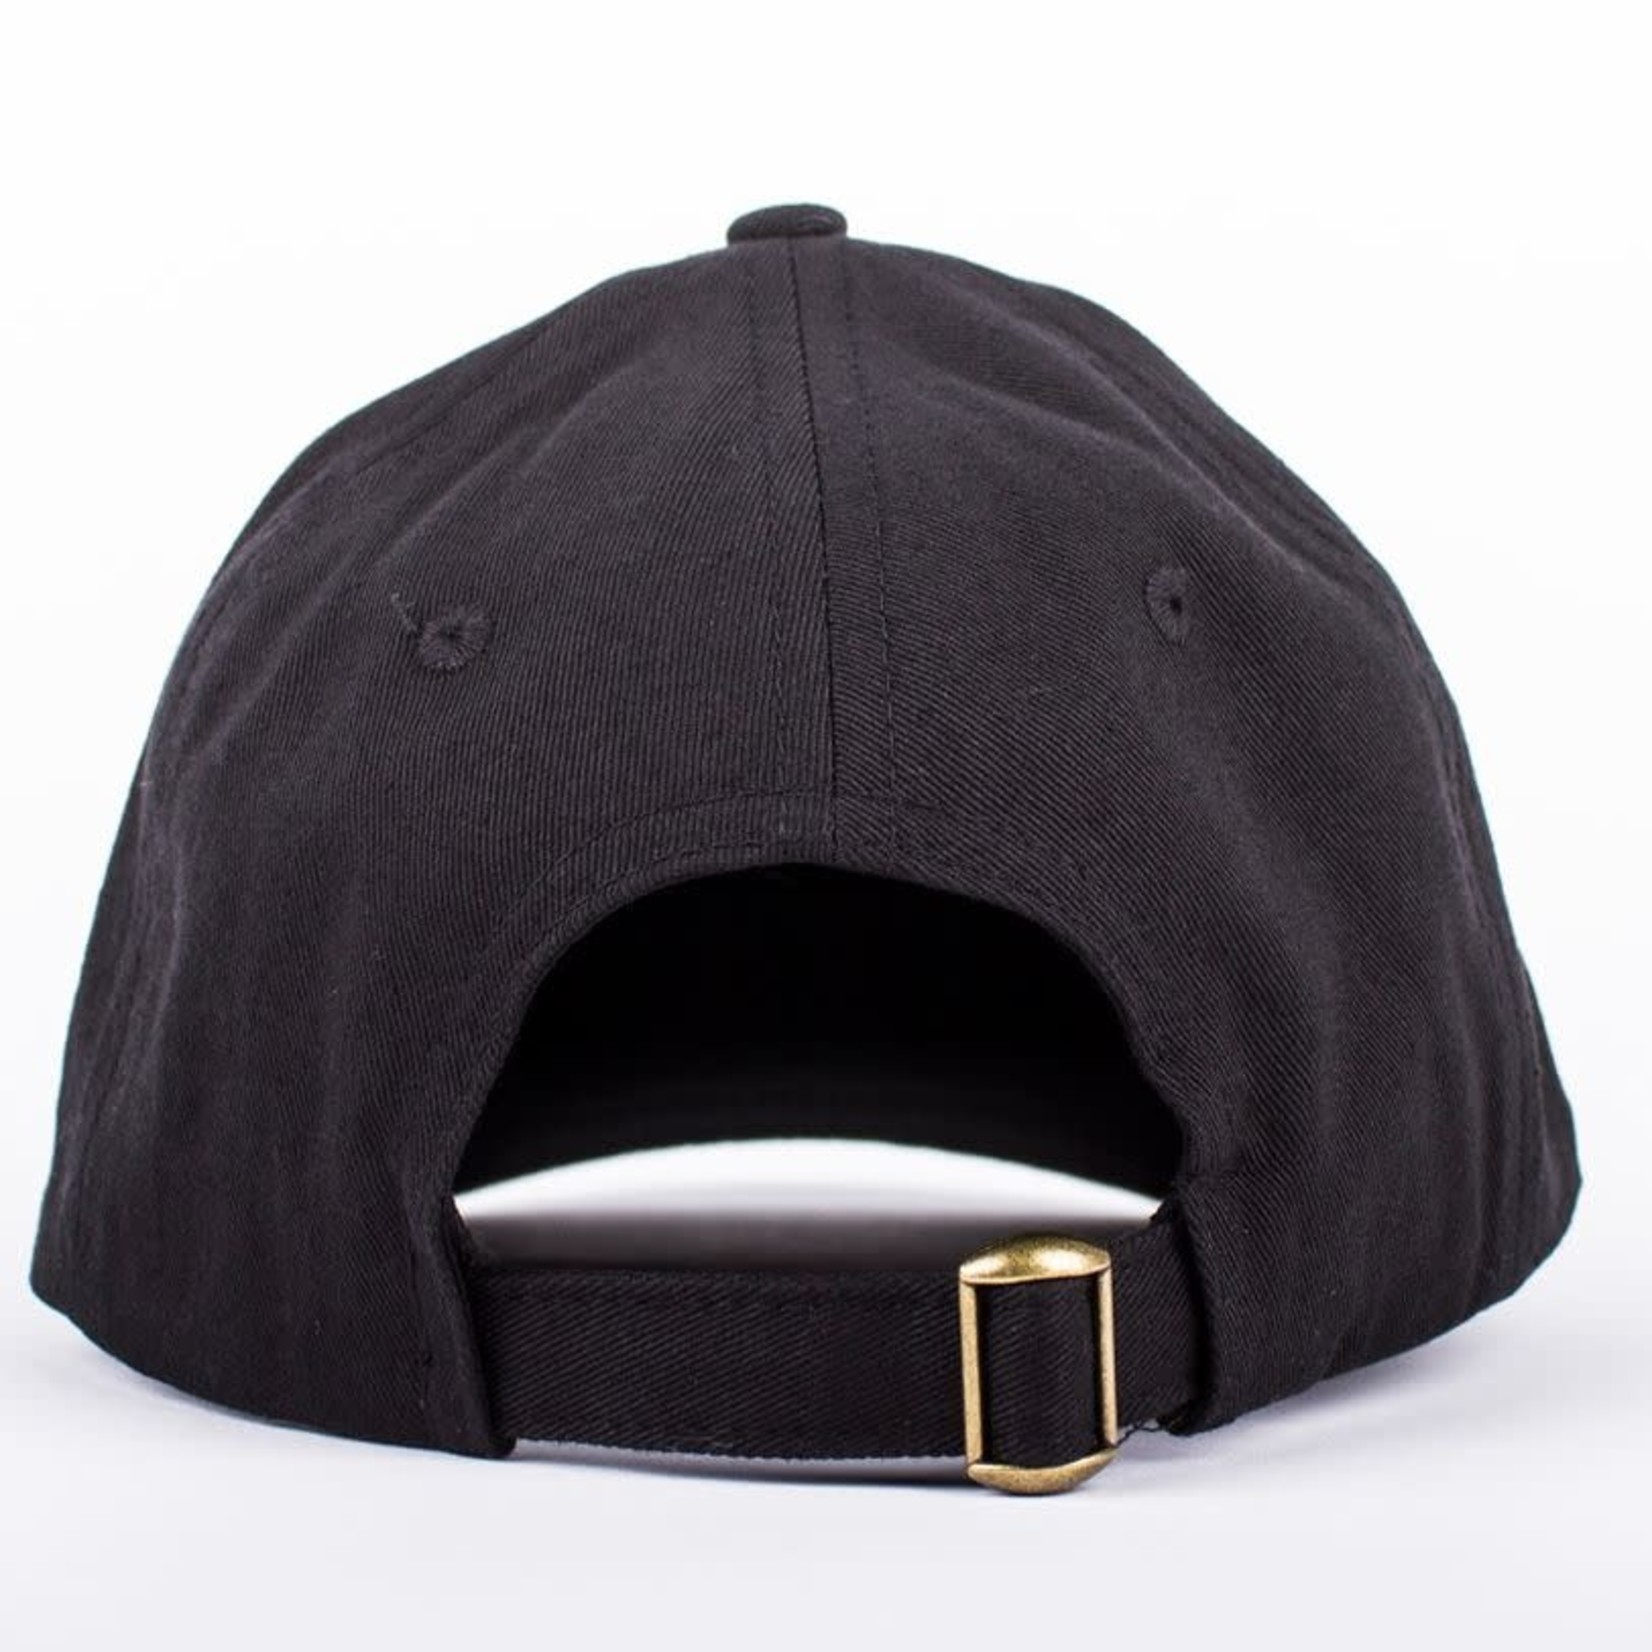 WLKN WLKN : The Country Daddy Cap Black O/S